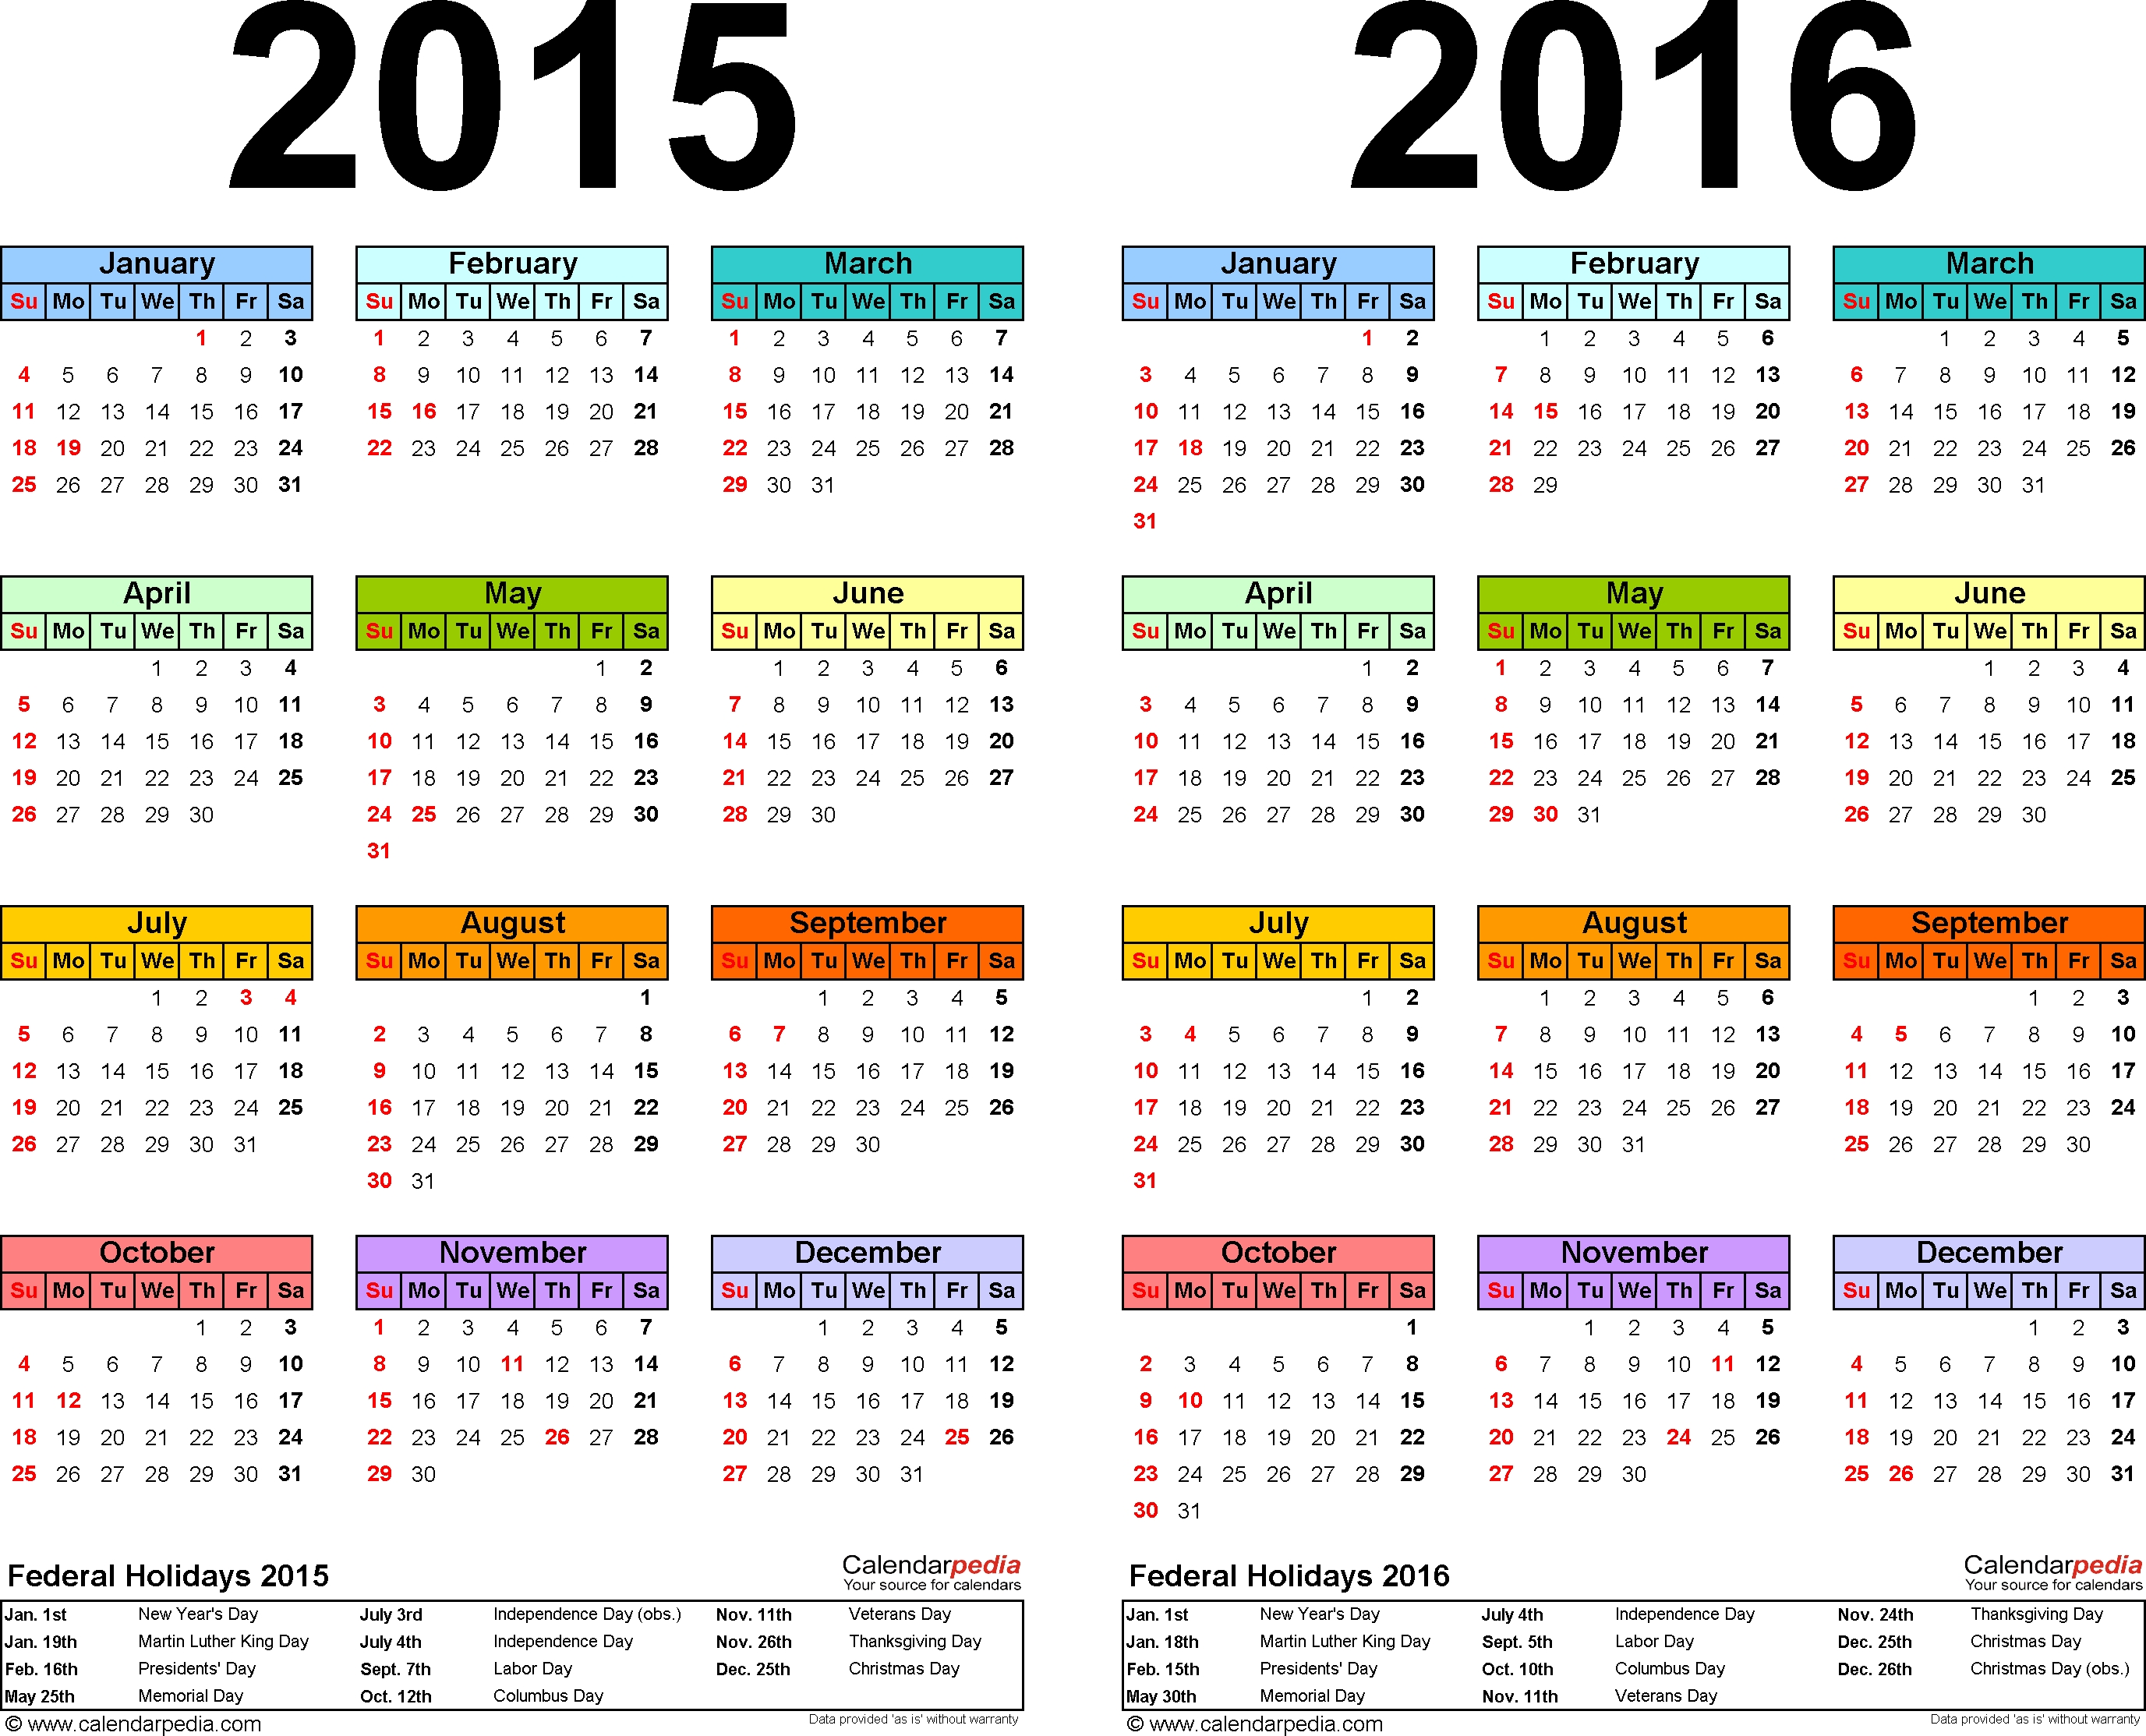 Template 1: Pdf Template For Two Year Calendar 2015/2016